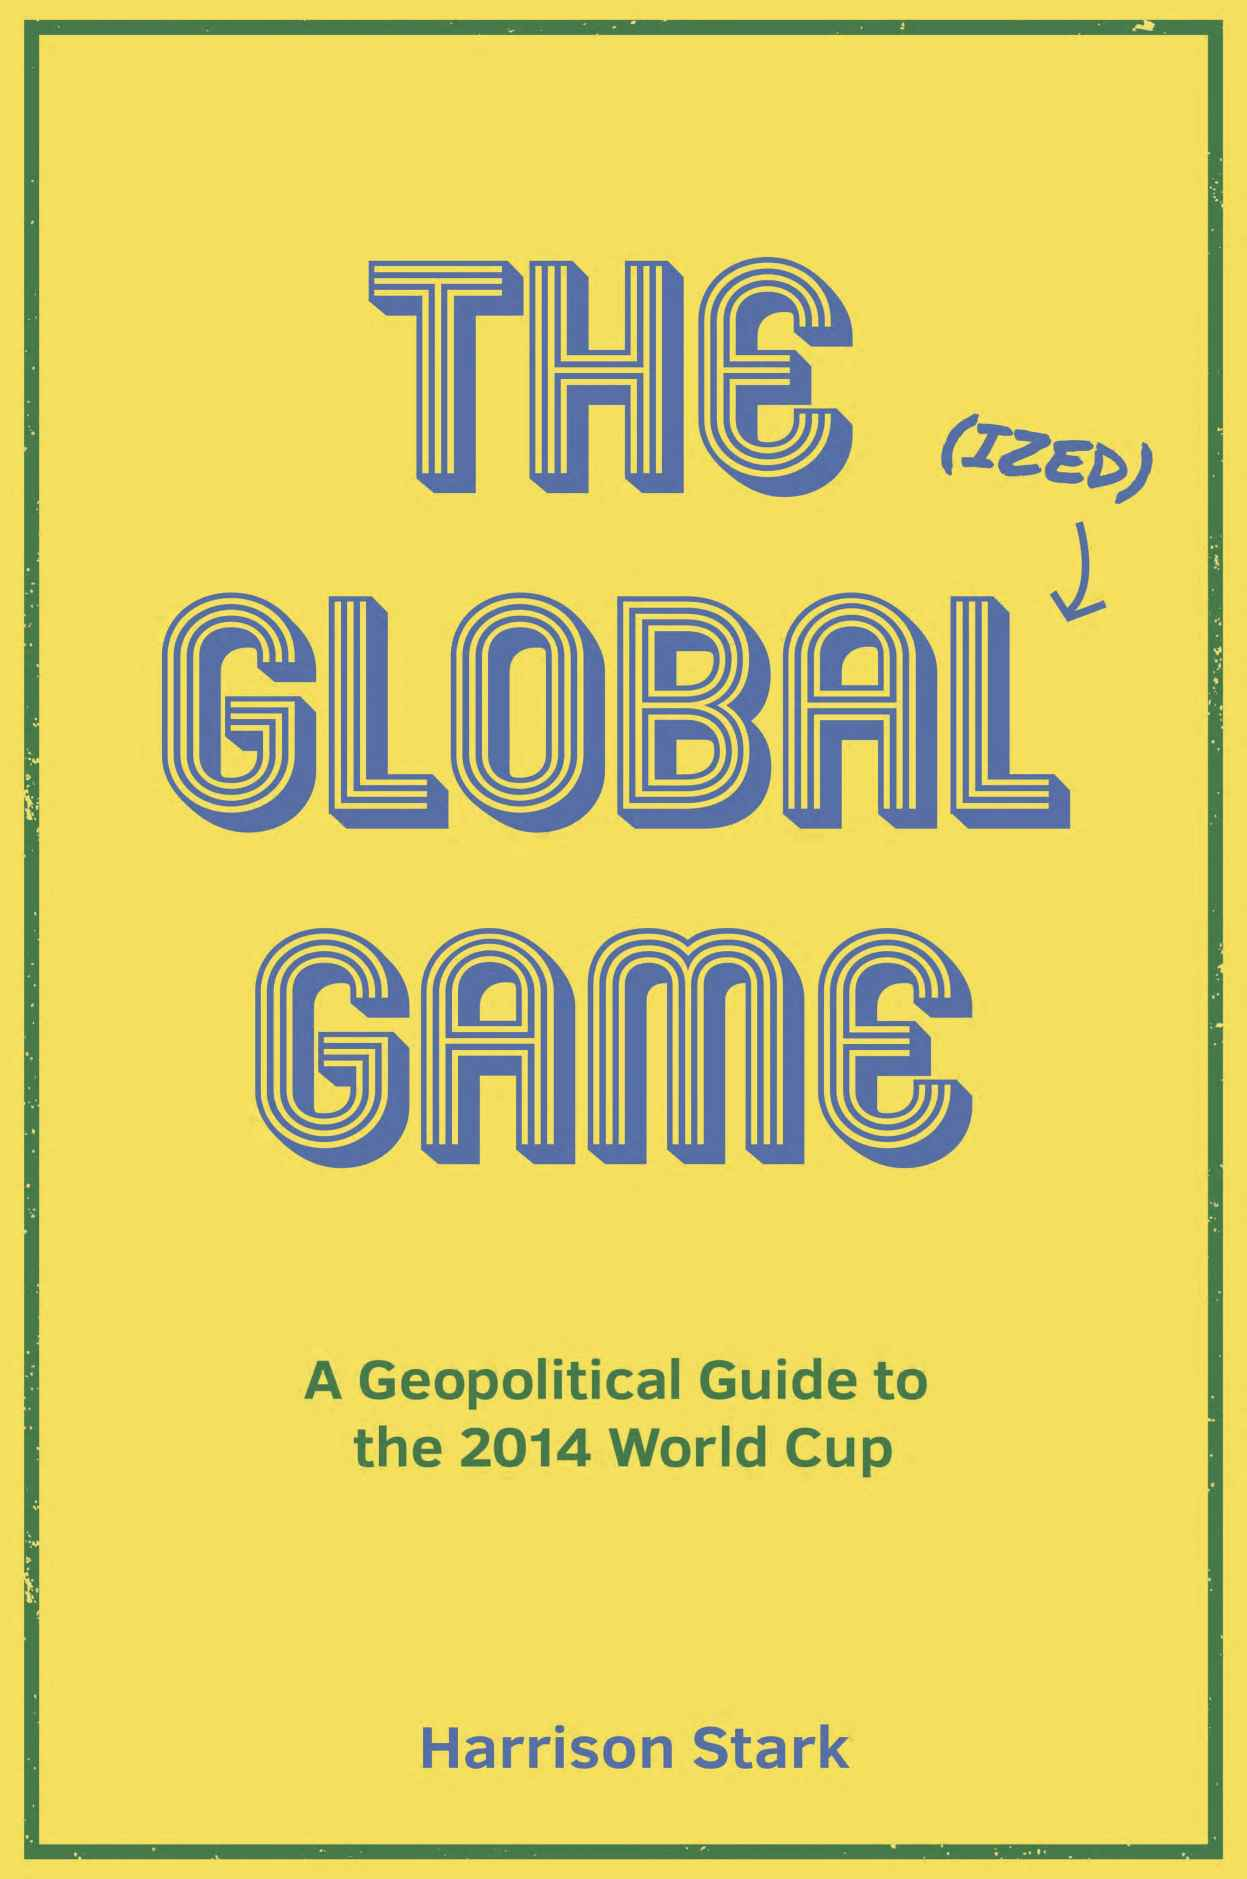 Book Review: 'The Global(ized) Game' By Harrison Stark: A Geopolitical Guide to World Cup 2014